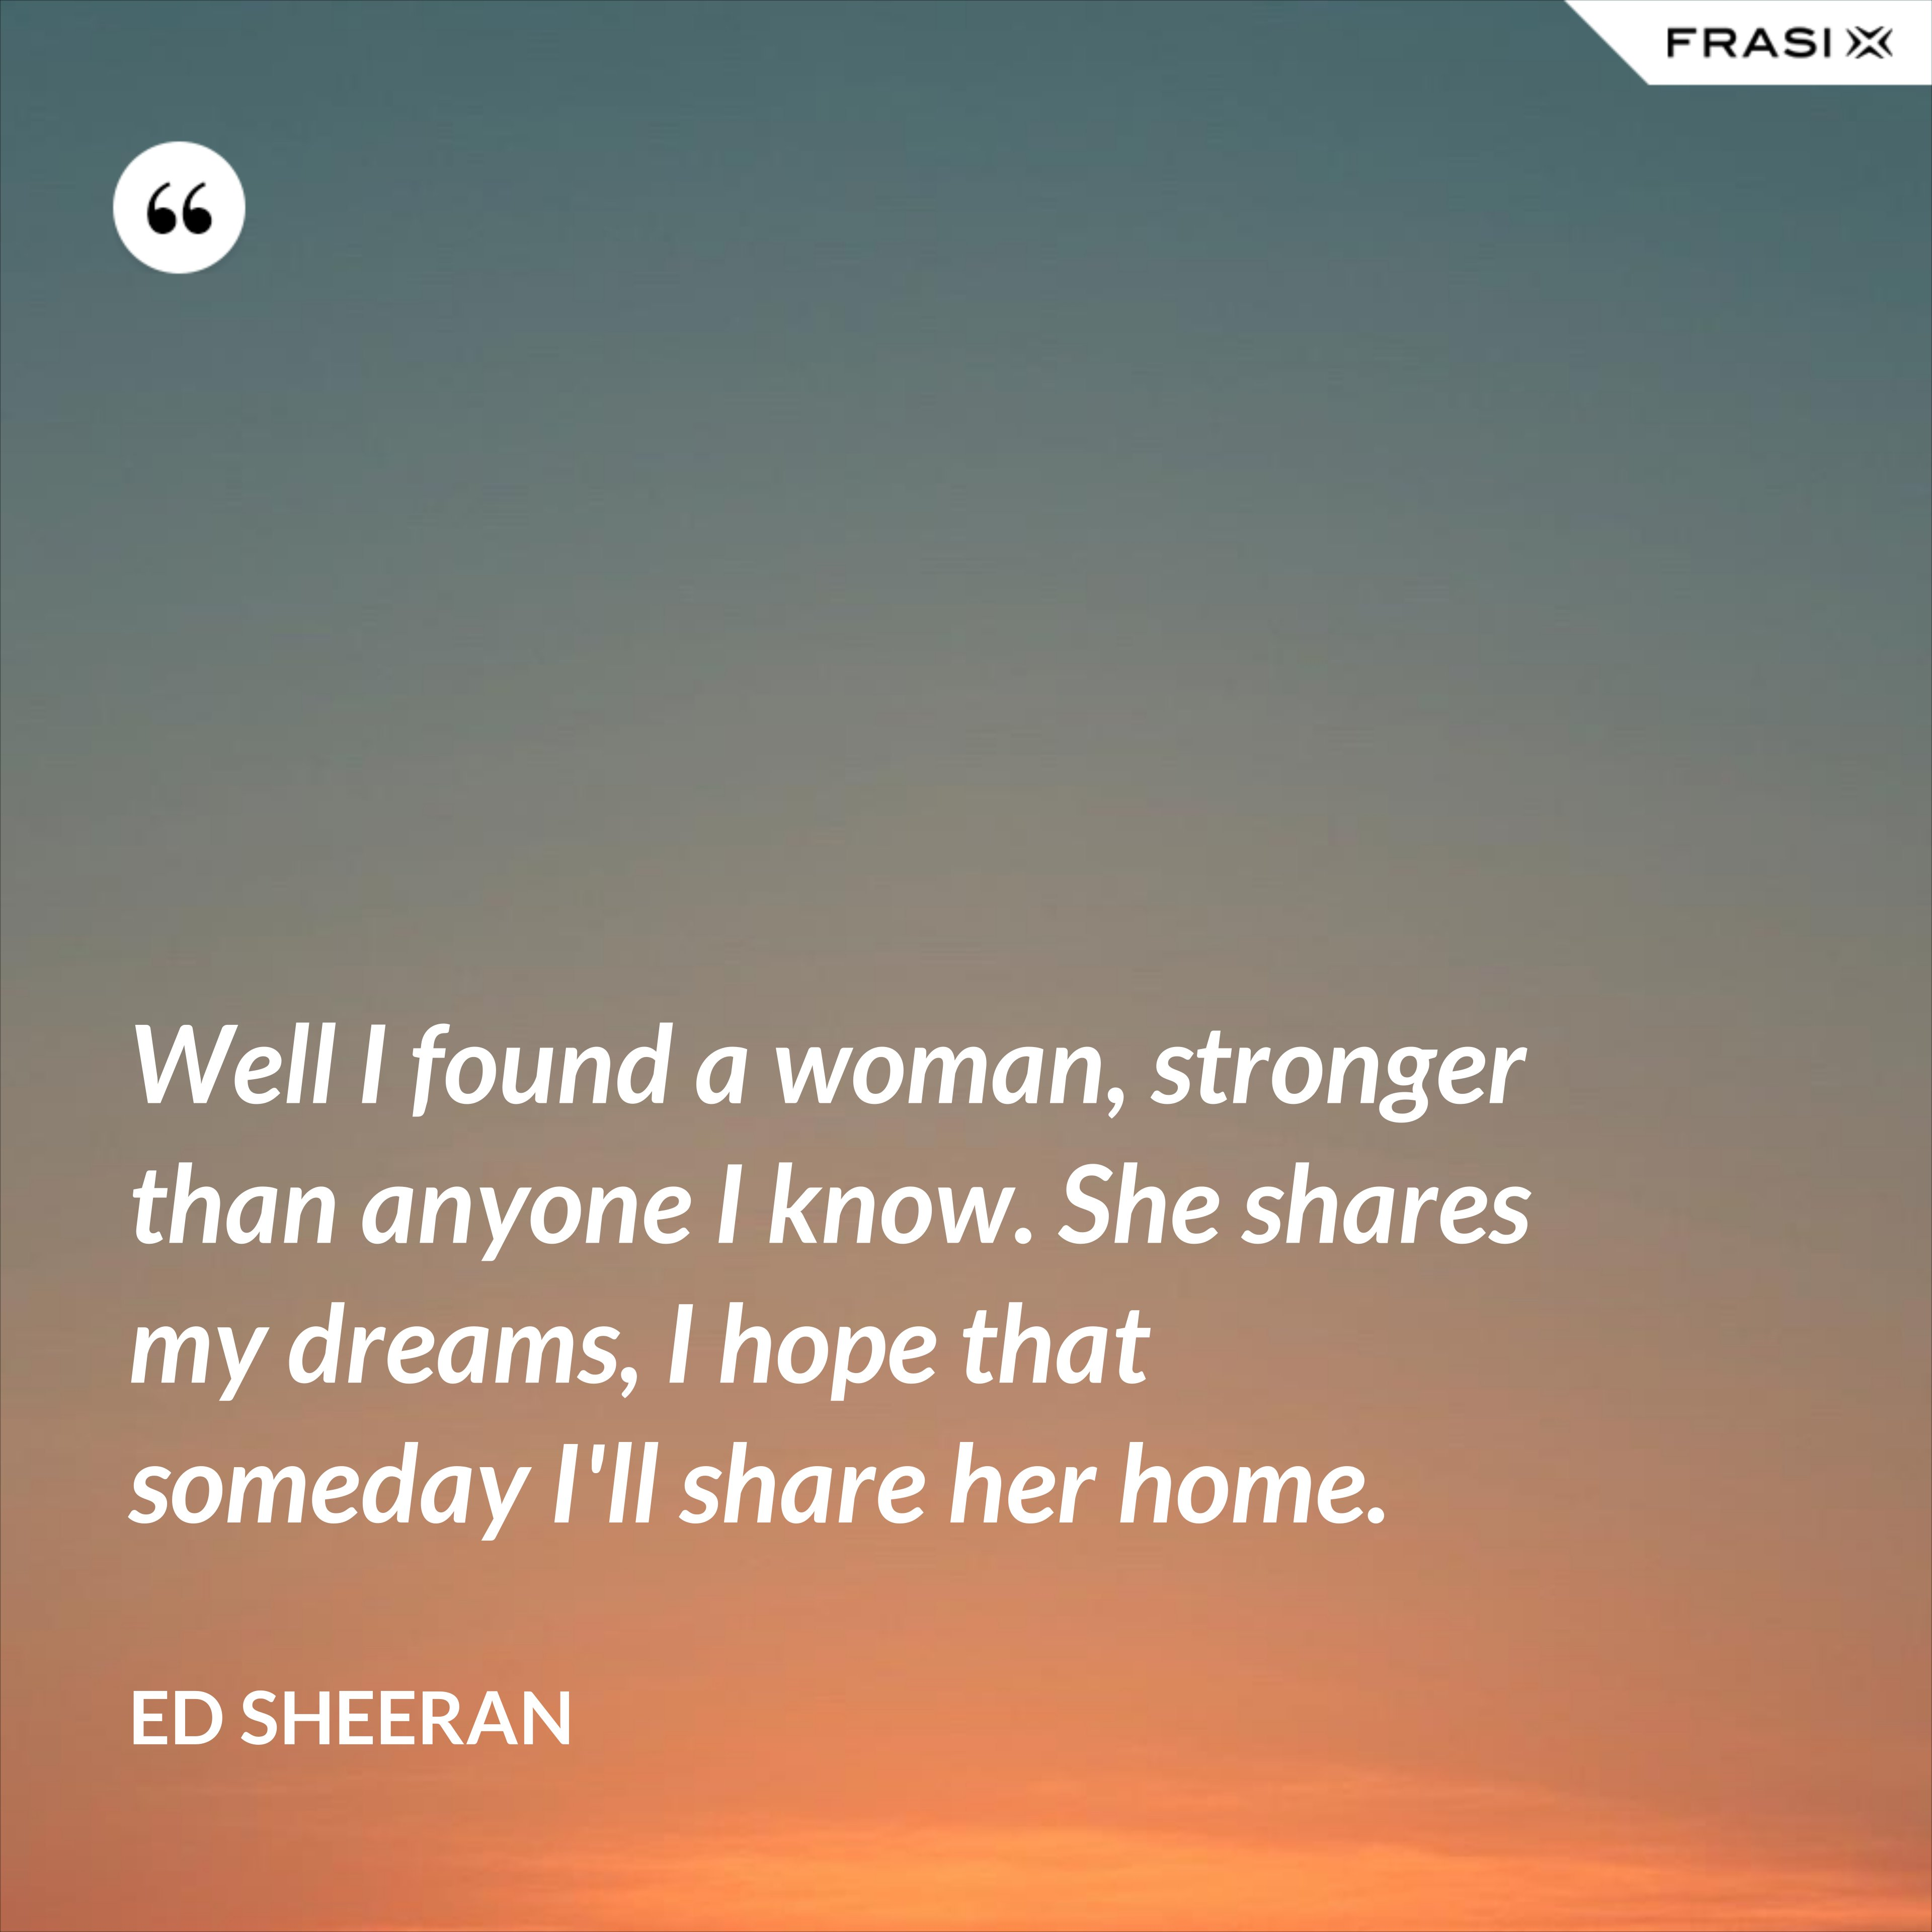 Well I found a woman, stronger than anyone I know. She shares my dreams, I hope that someday I'll share her home. - Ed Sheeran